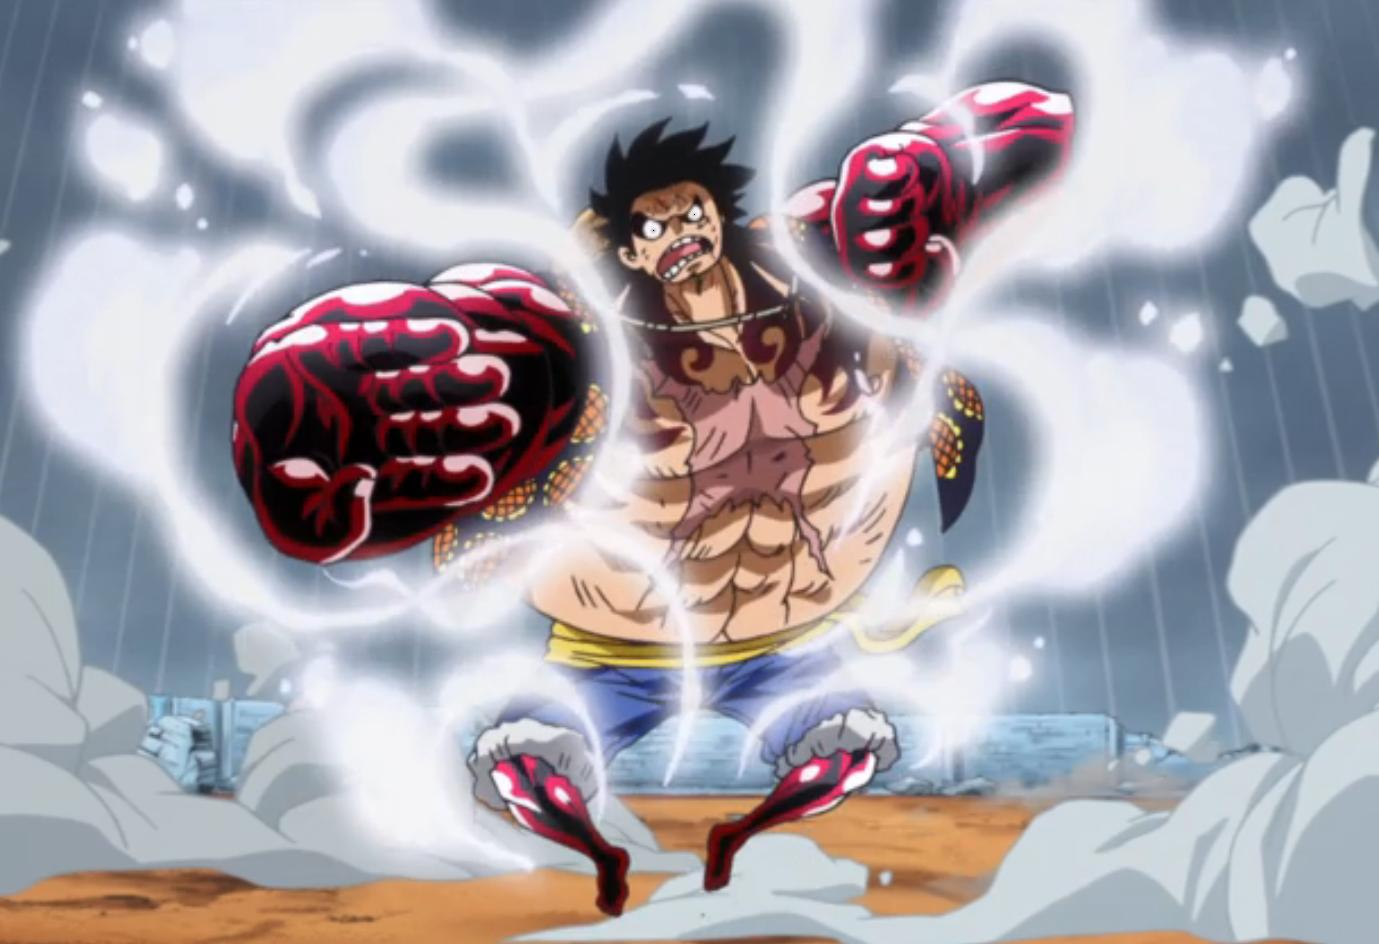 Check out this fantastic collection of luffy gear 4 wallpapers, with 43 luffy gear 4 background images for your desktop, phone or tablet. Luffy Gear Fourth Wallpapers - Wallpaper Cave